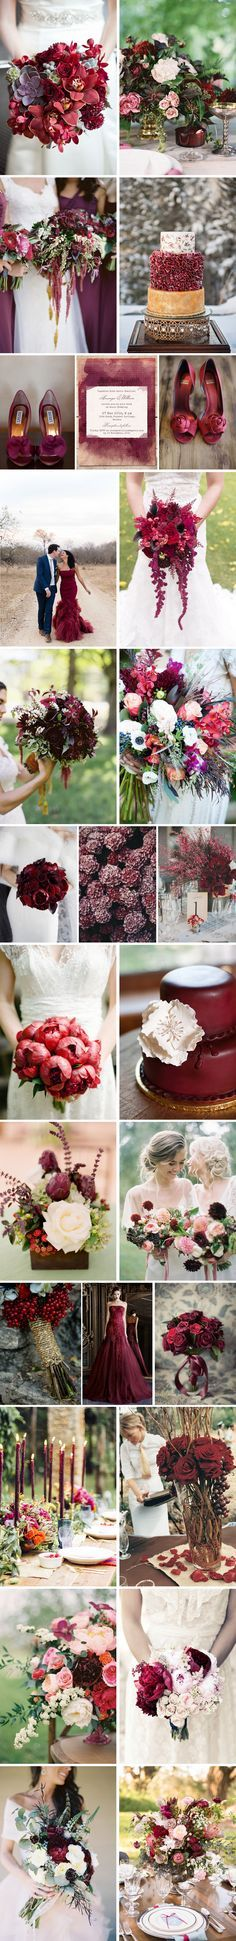 Deep reds are beautiful for fall weddings. I love the idea of a dark red wedding gown rather than white/ ivory. Unique and gorgeous!